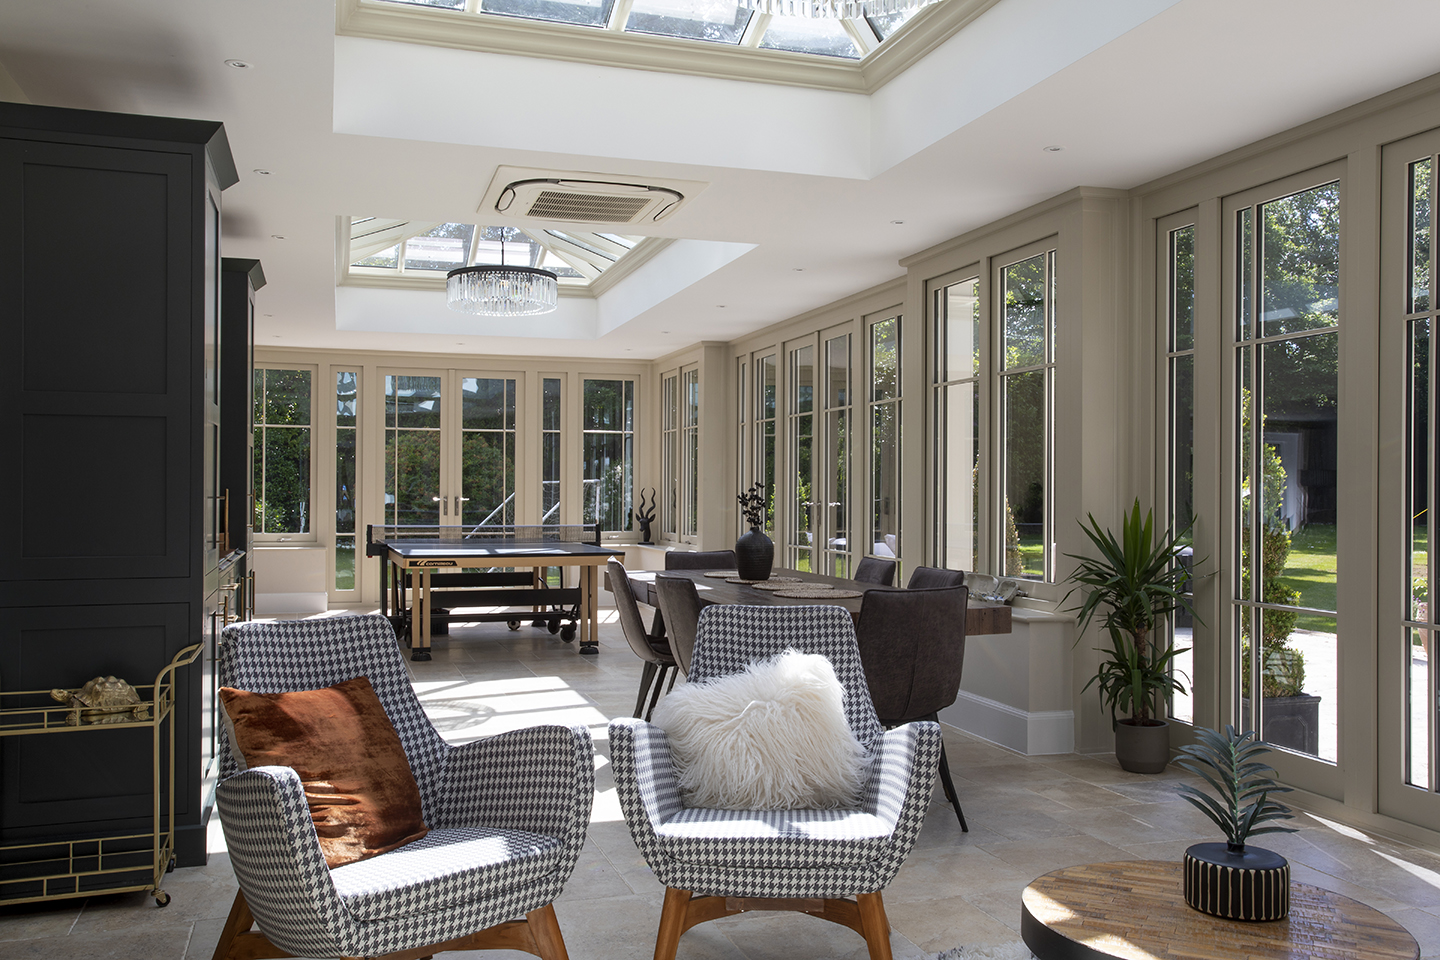 Orangery, interior, architecture, house, home, property, architecture photography